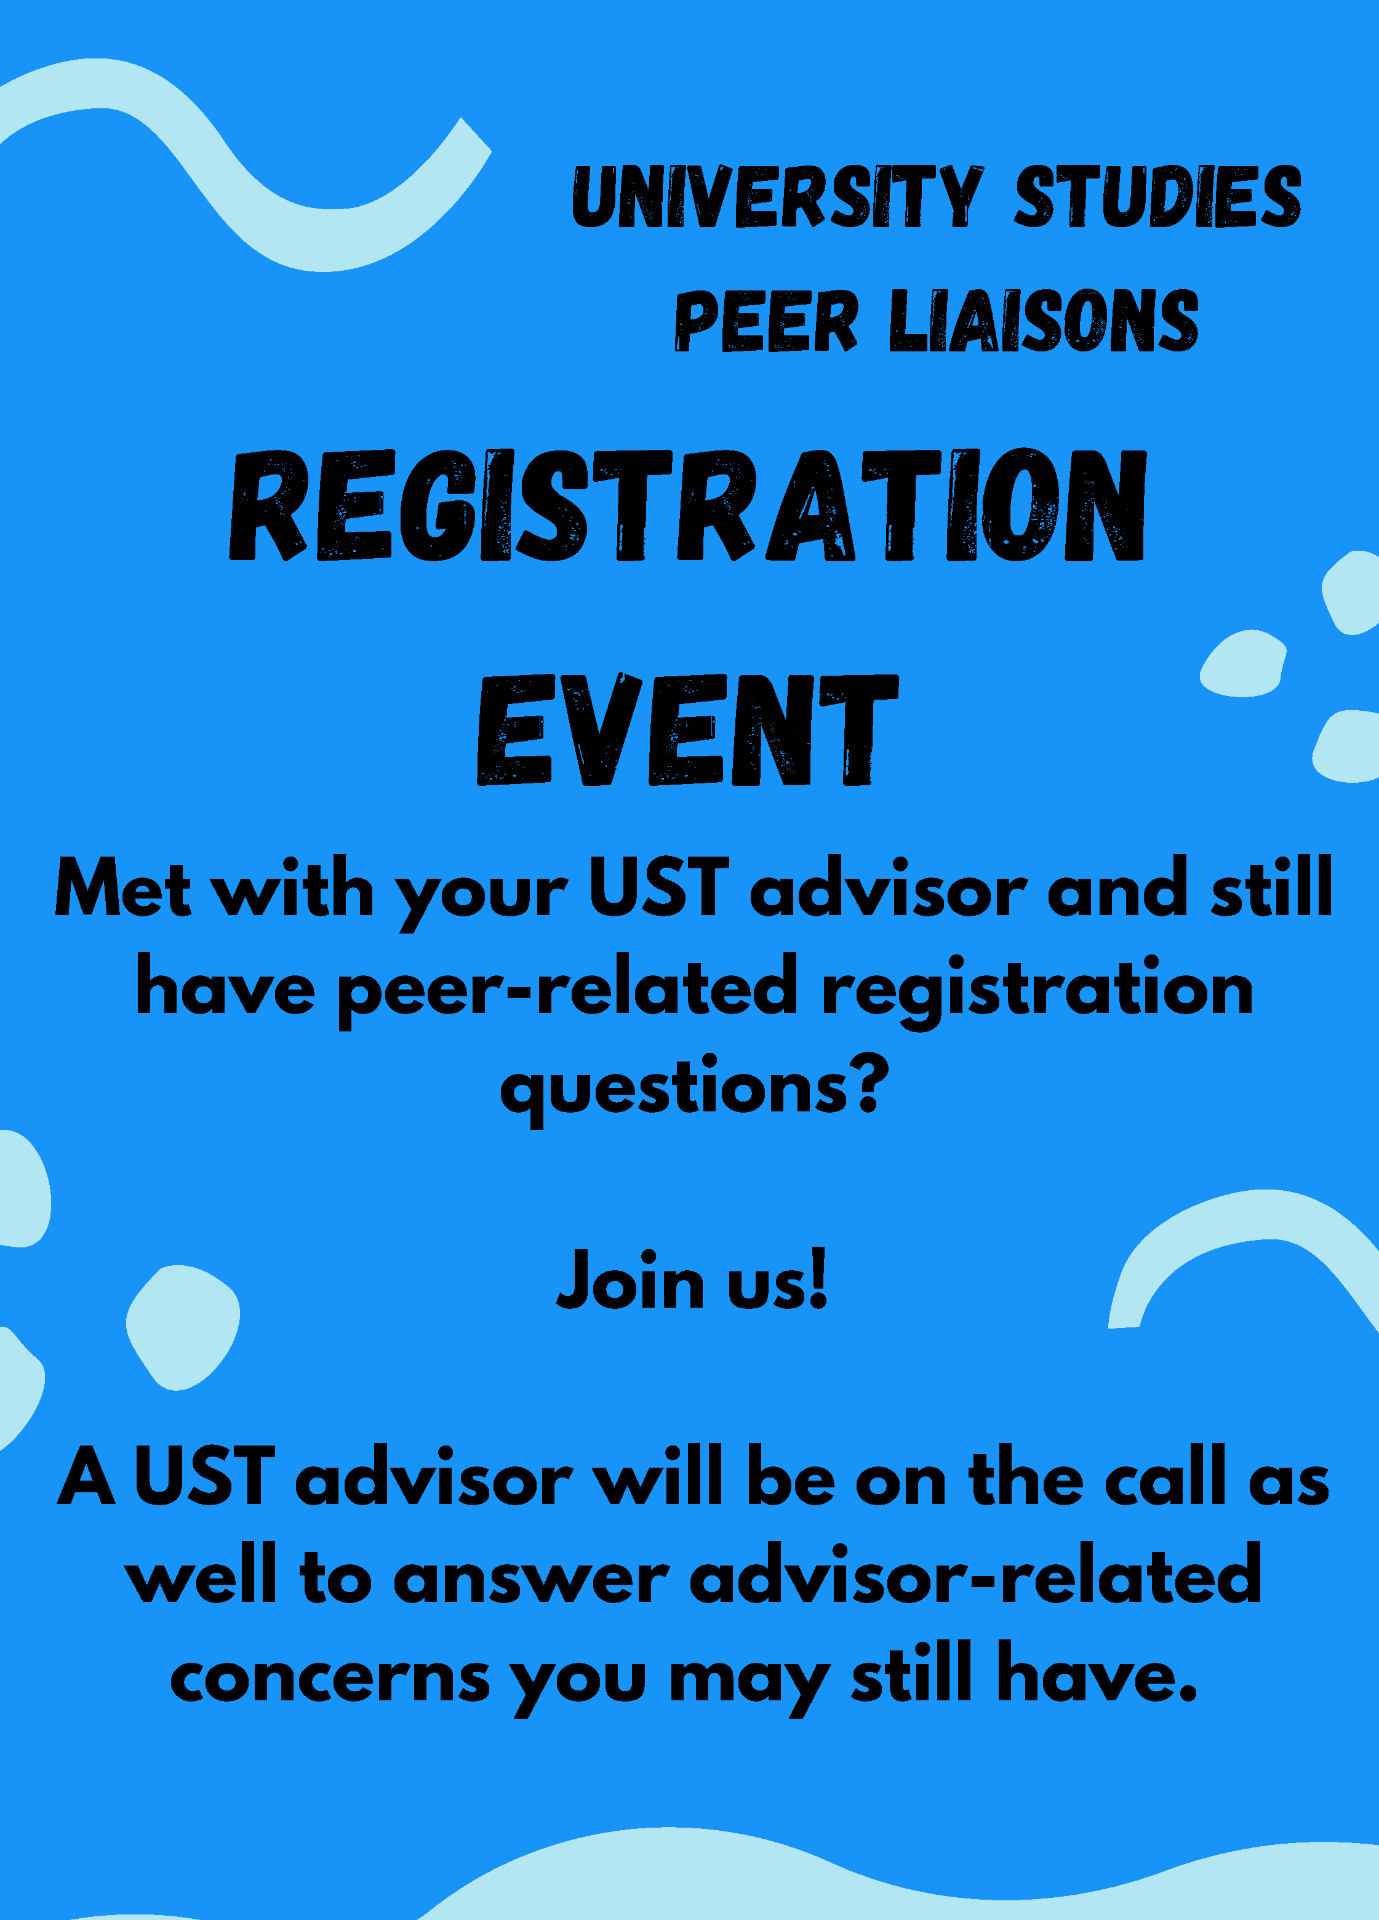 University Studies Peer Liaisons Registration Event. Met with your UST advisor and still have peer-related registration questions? Join us! A UST advisor will be on the call as well to answer advisor-related concerns you may still have.